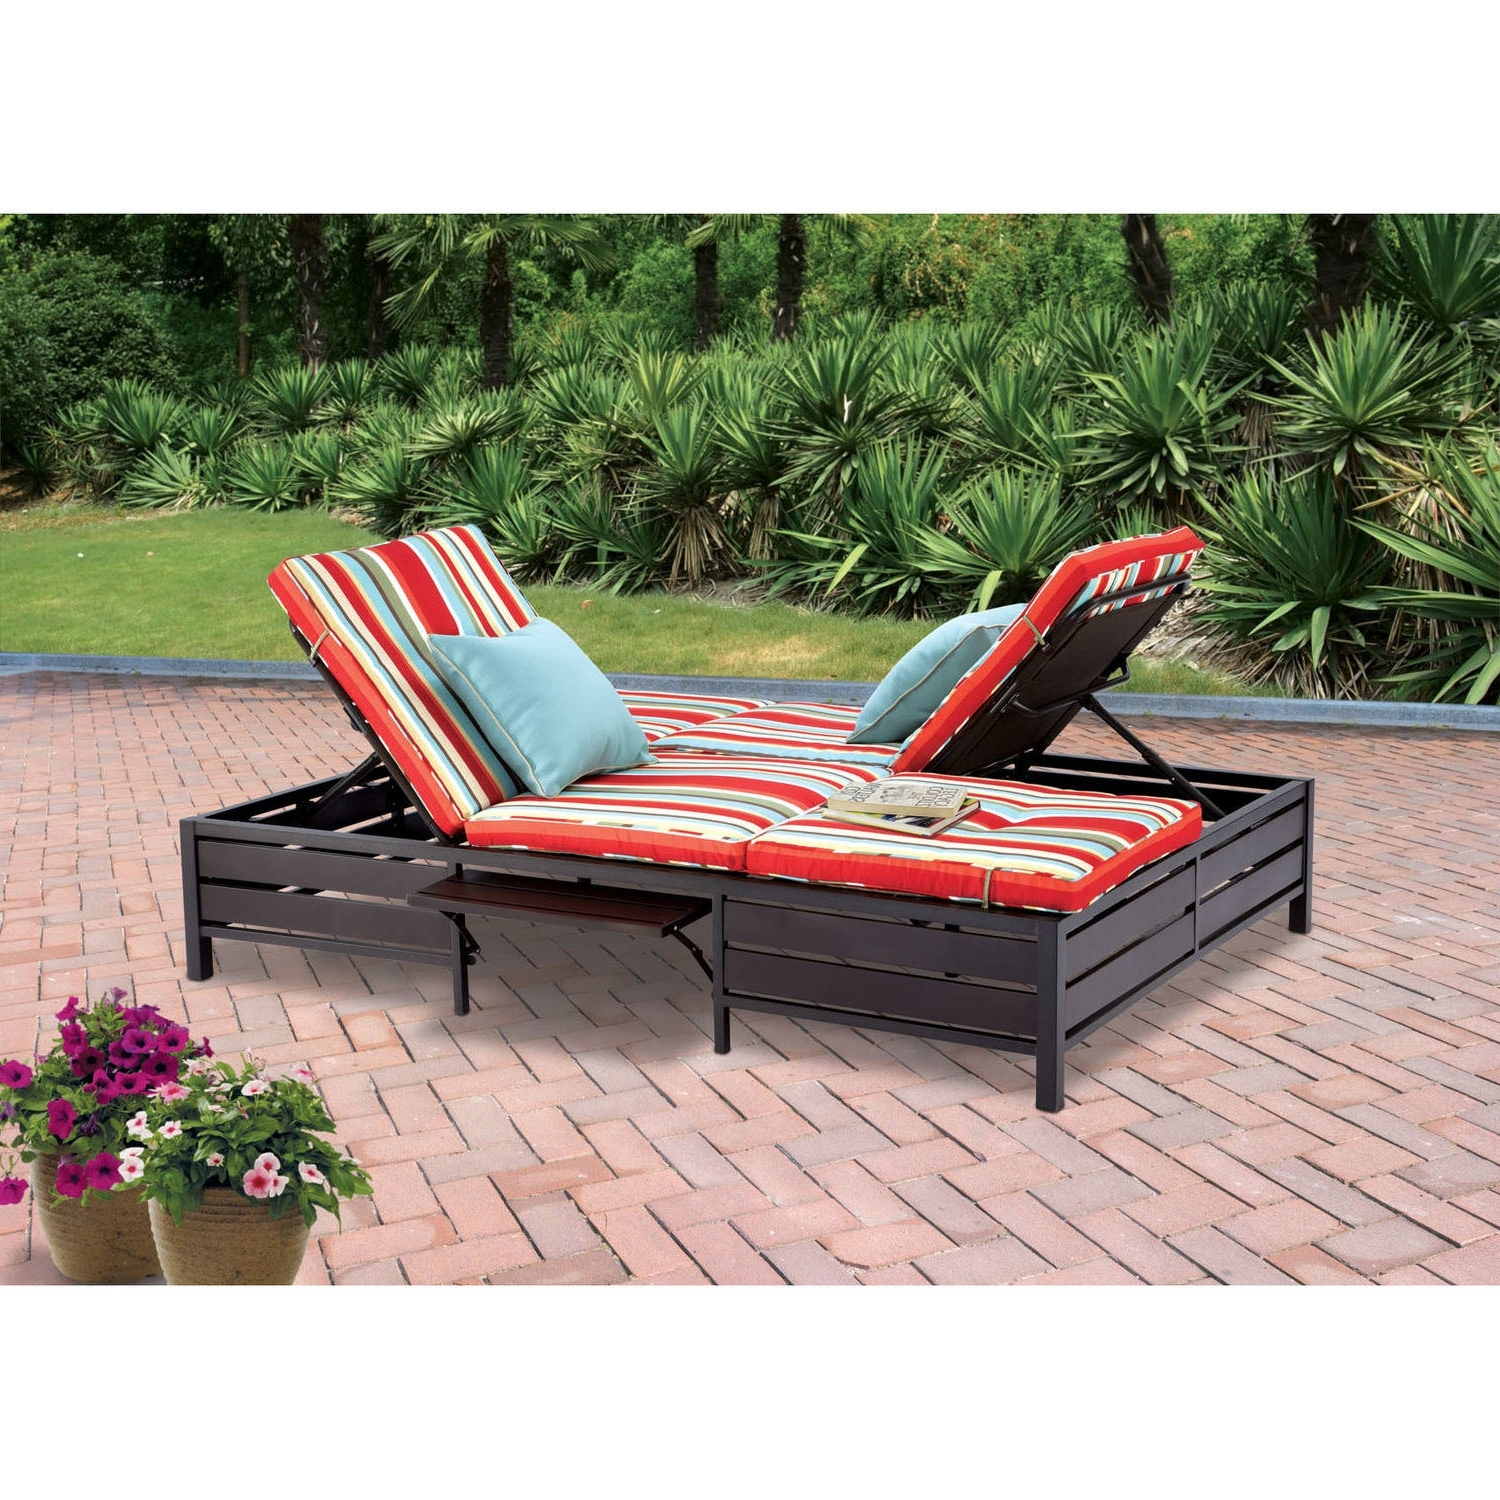 Most Popular Mainstays Outdoor Double Chaise Lounger, Stripe, Seats 2 – Walmart For Walmart Outdoor Chaise Lounges (View 5 of 15)